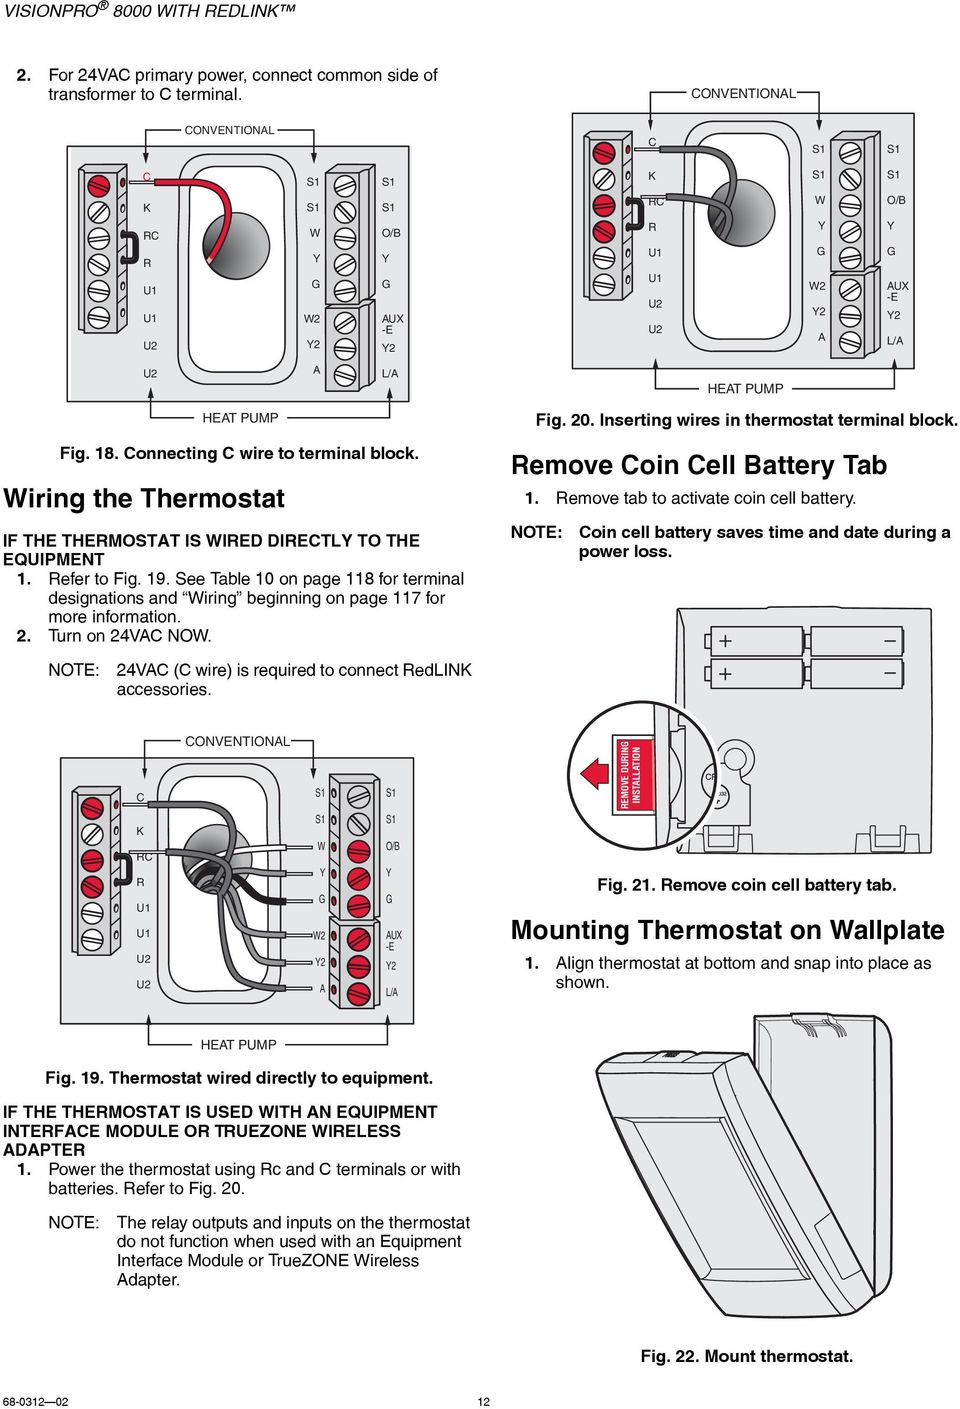 24vac thermostat wiring visionpro 8000 with redlink - pdf